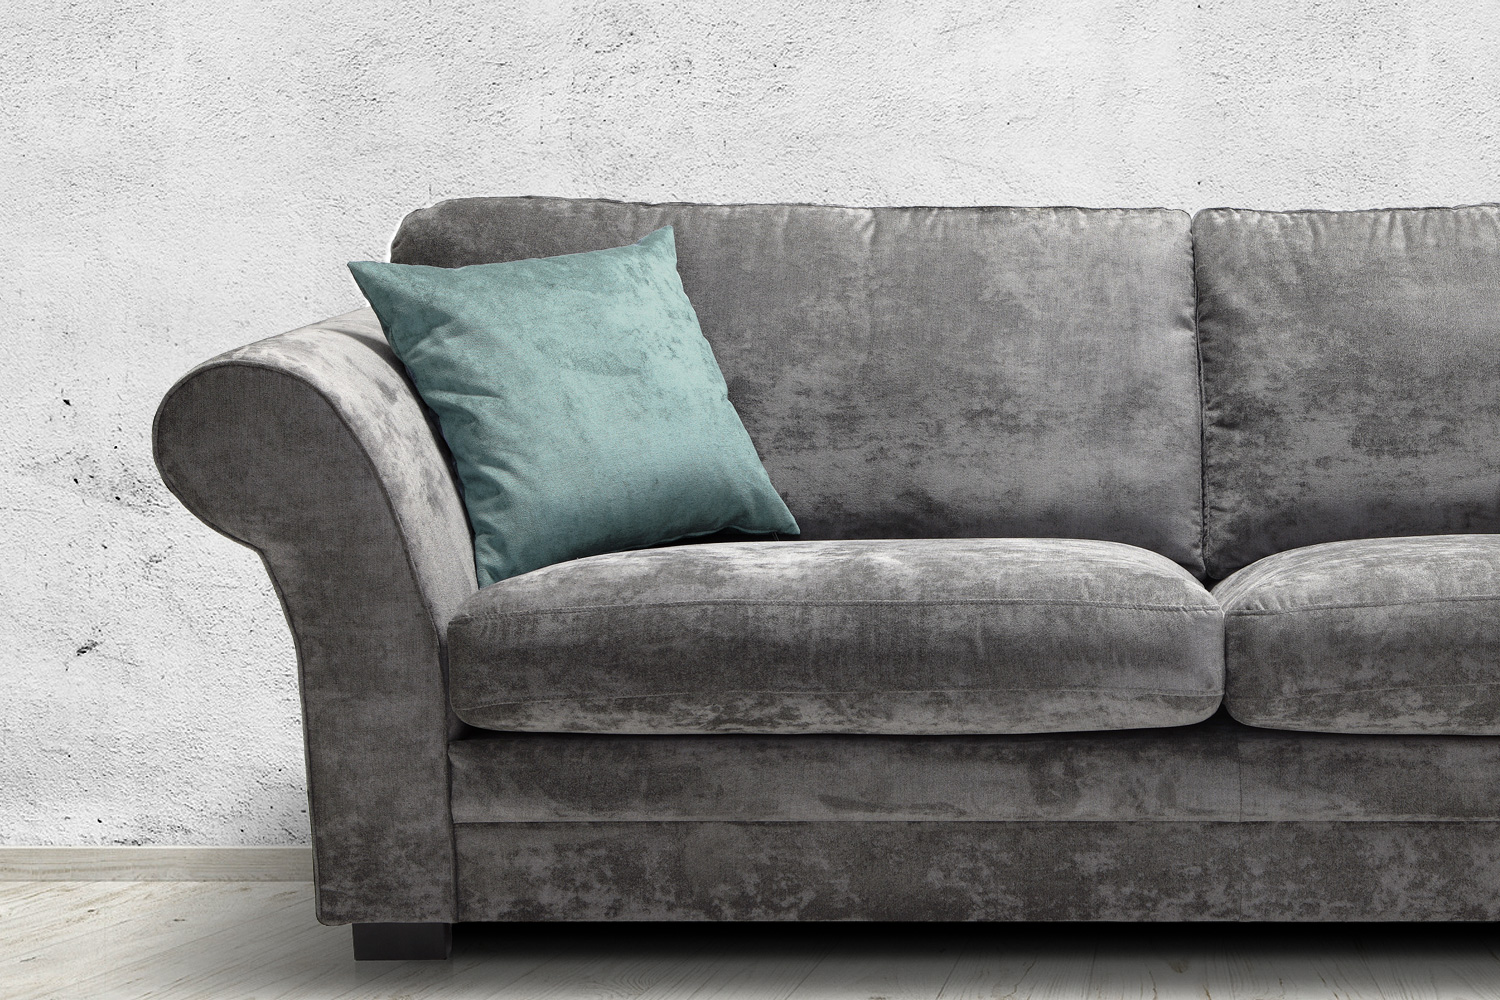 Novely issum samtig weicher m belstoff farbe 14 lila for Sofa 2 meter